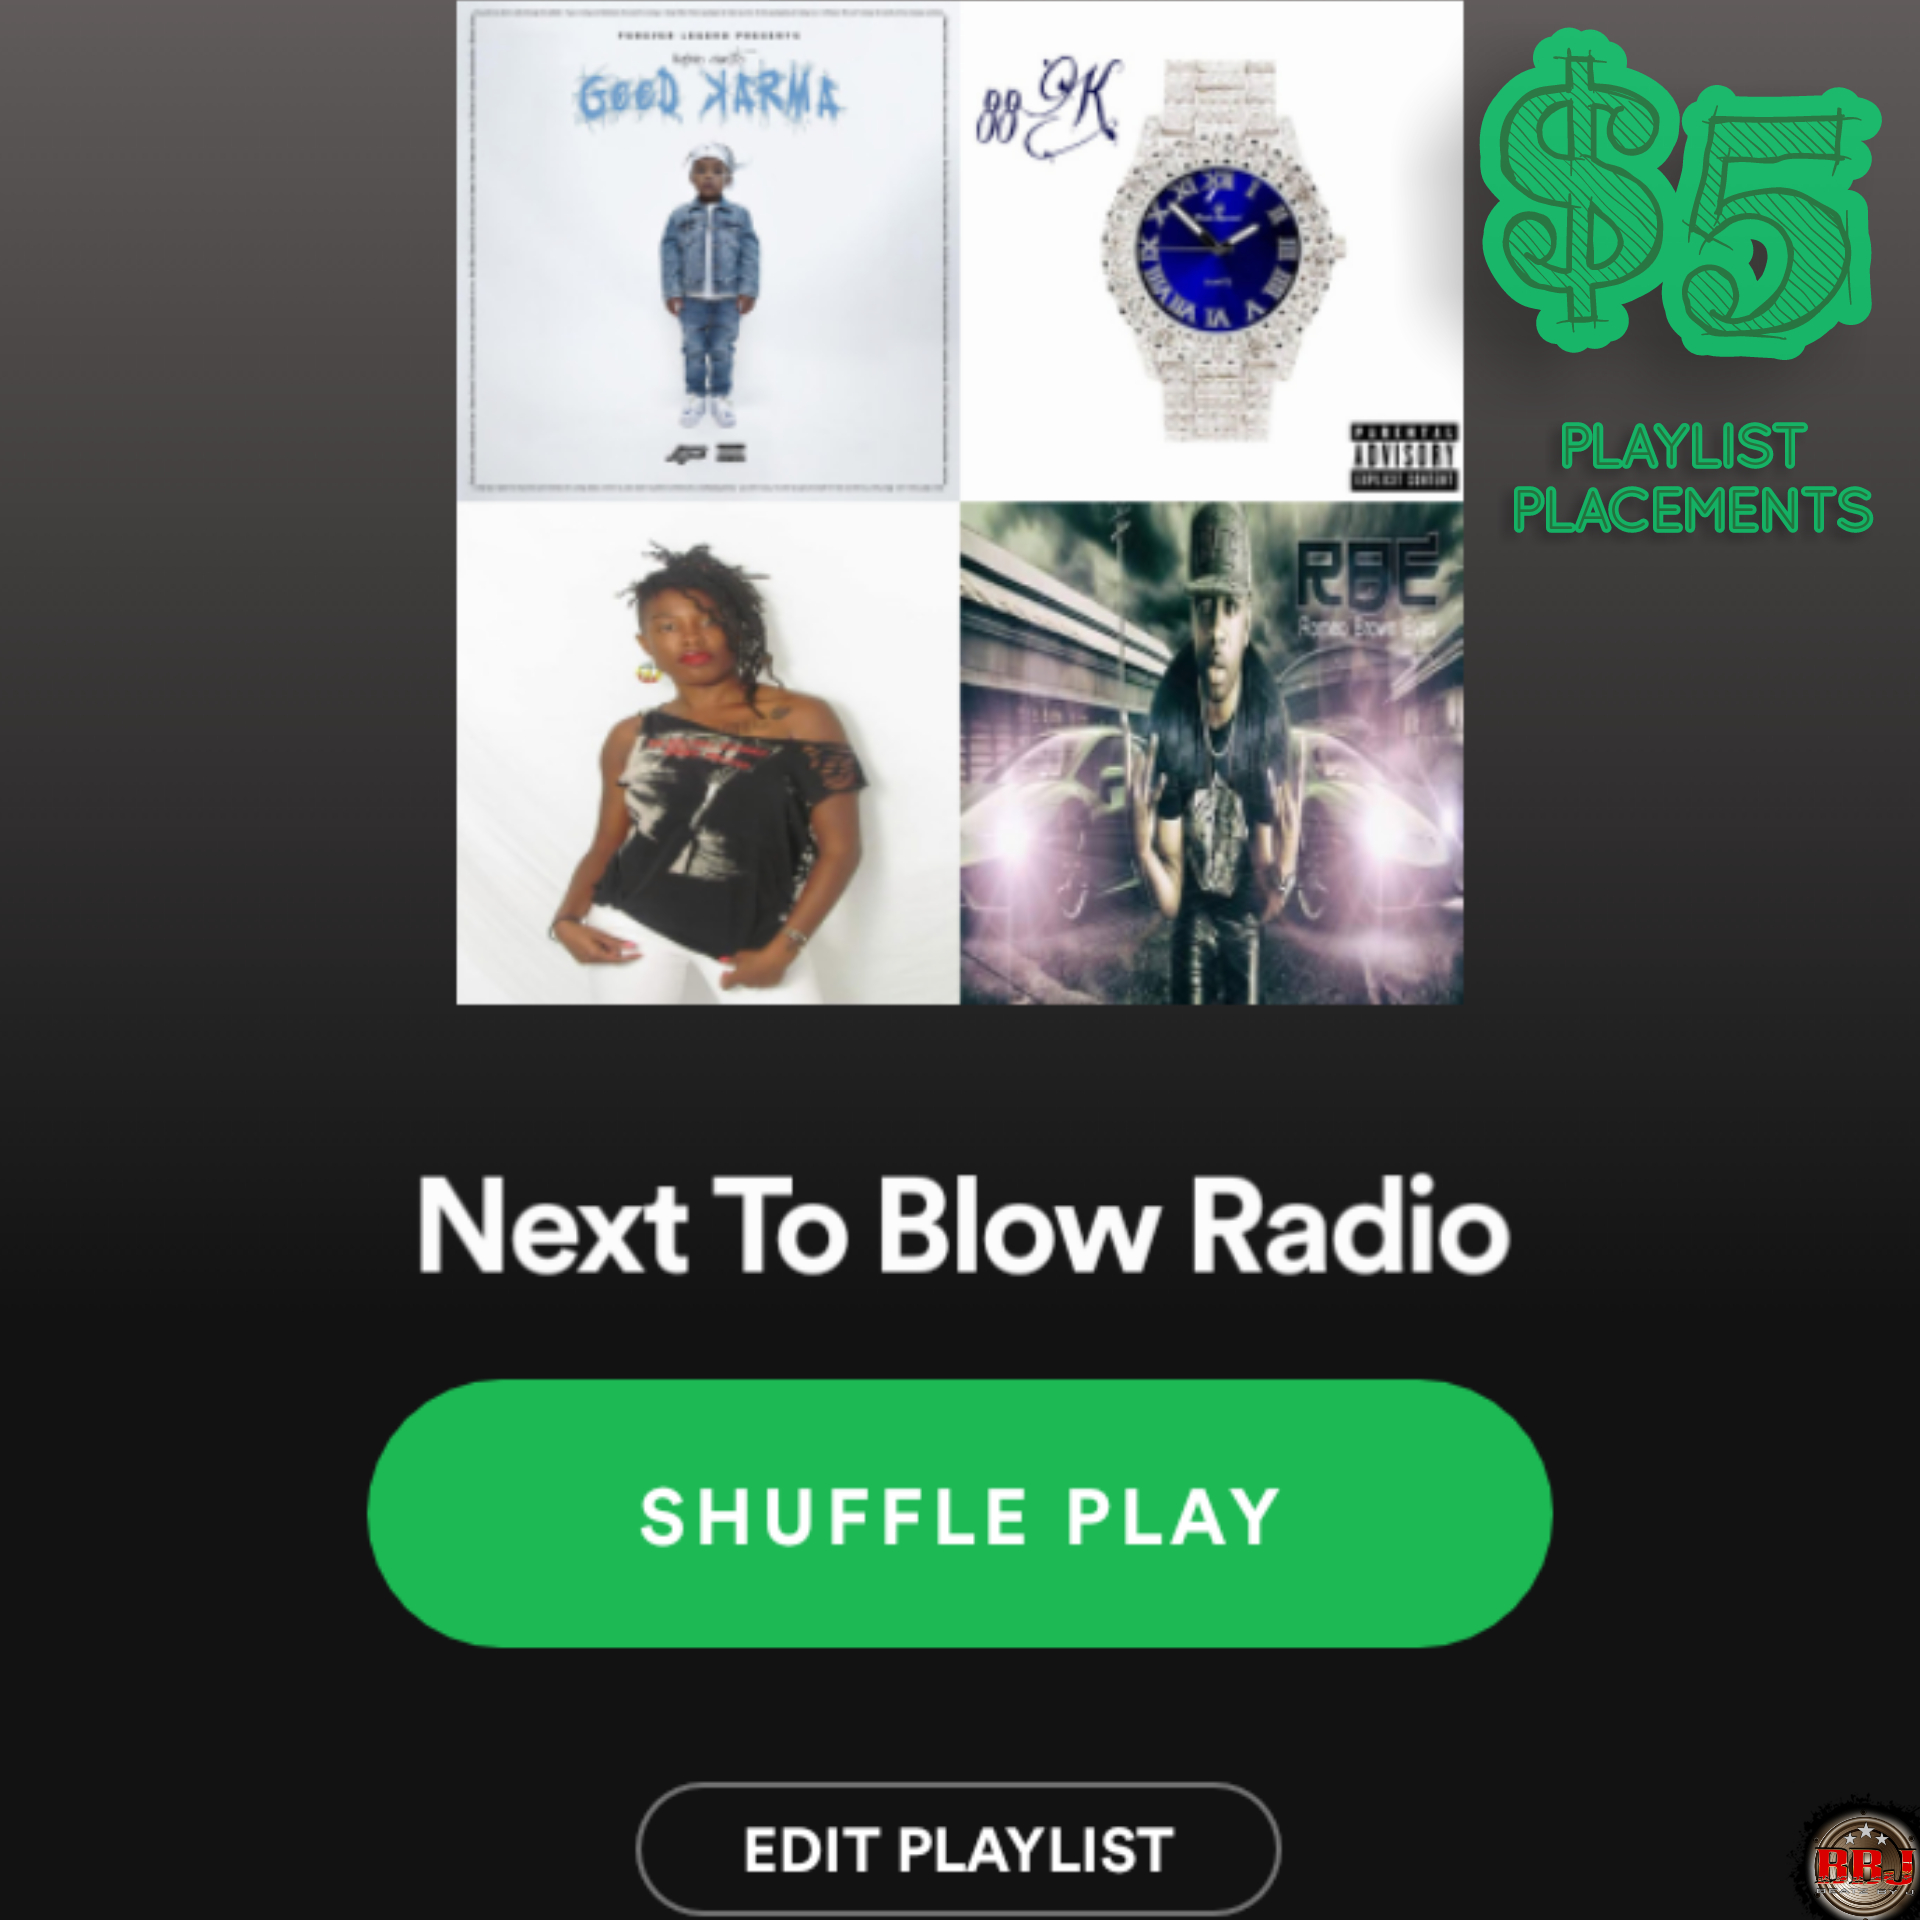 2wk Playlist Placements add 1 song to active playlist organically boost streams & fans